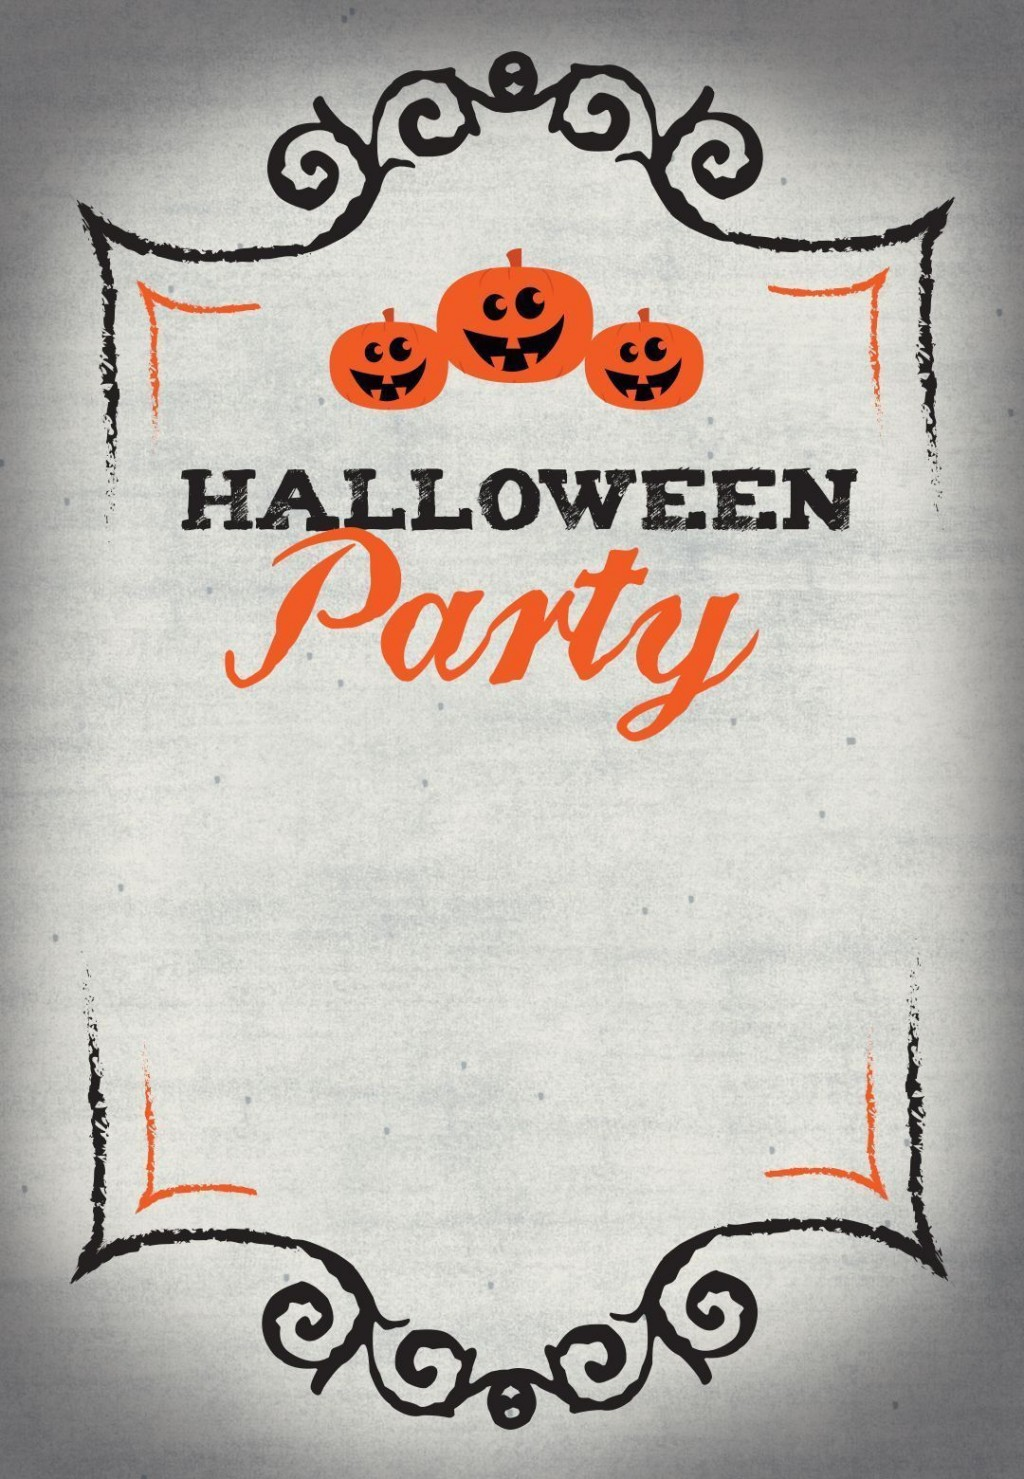 000 Remarkable Halloween Party Invite Template Sample  Spooky Invitation Free Printable Birthday DownloadLarge